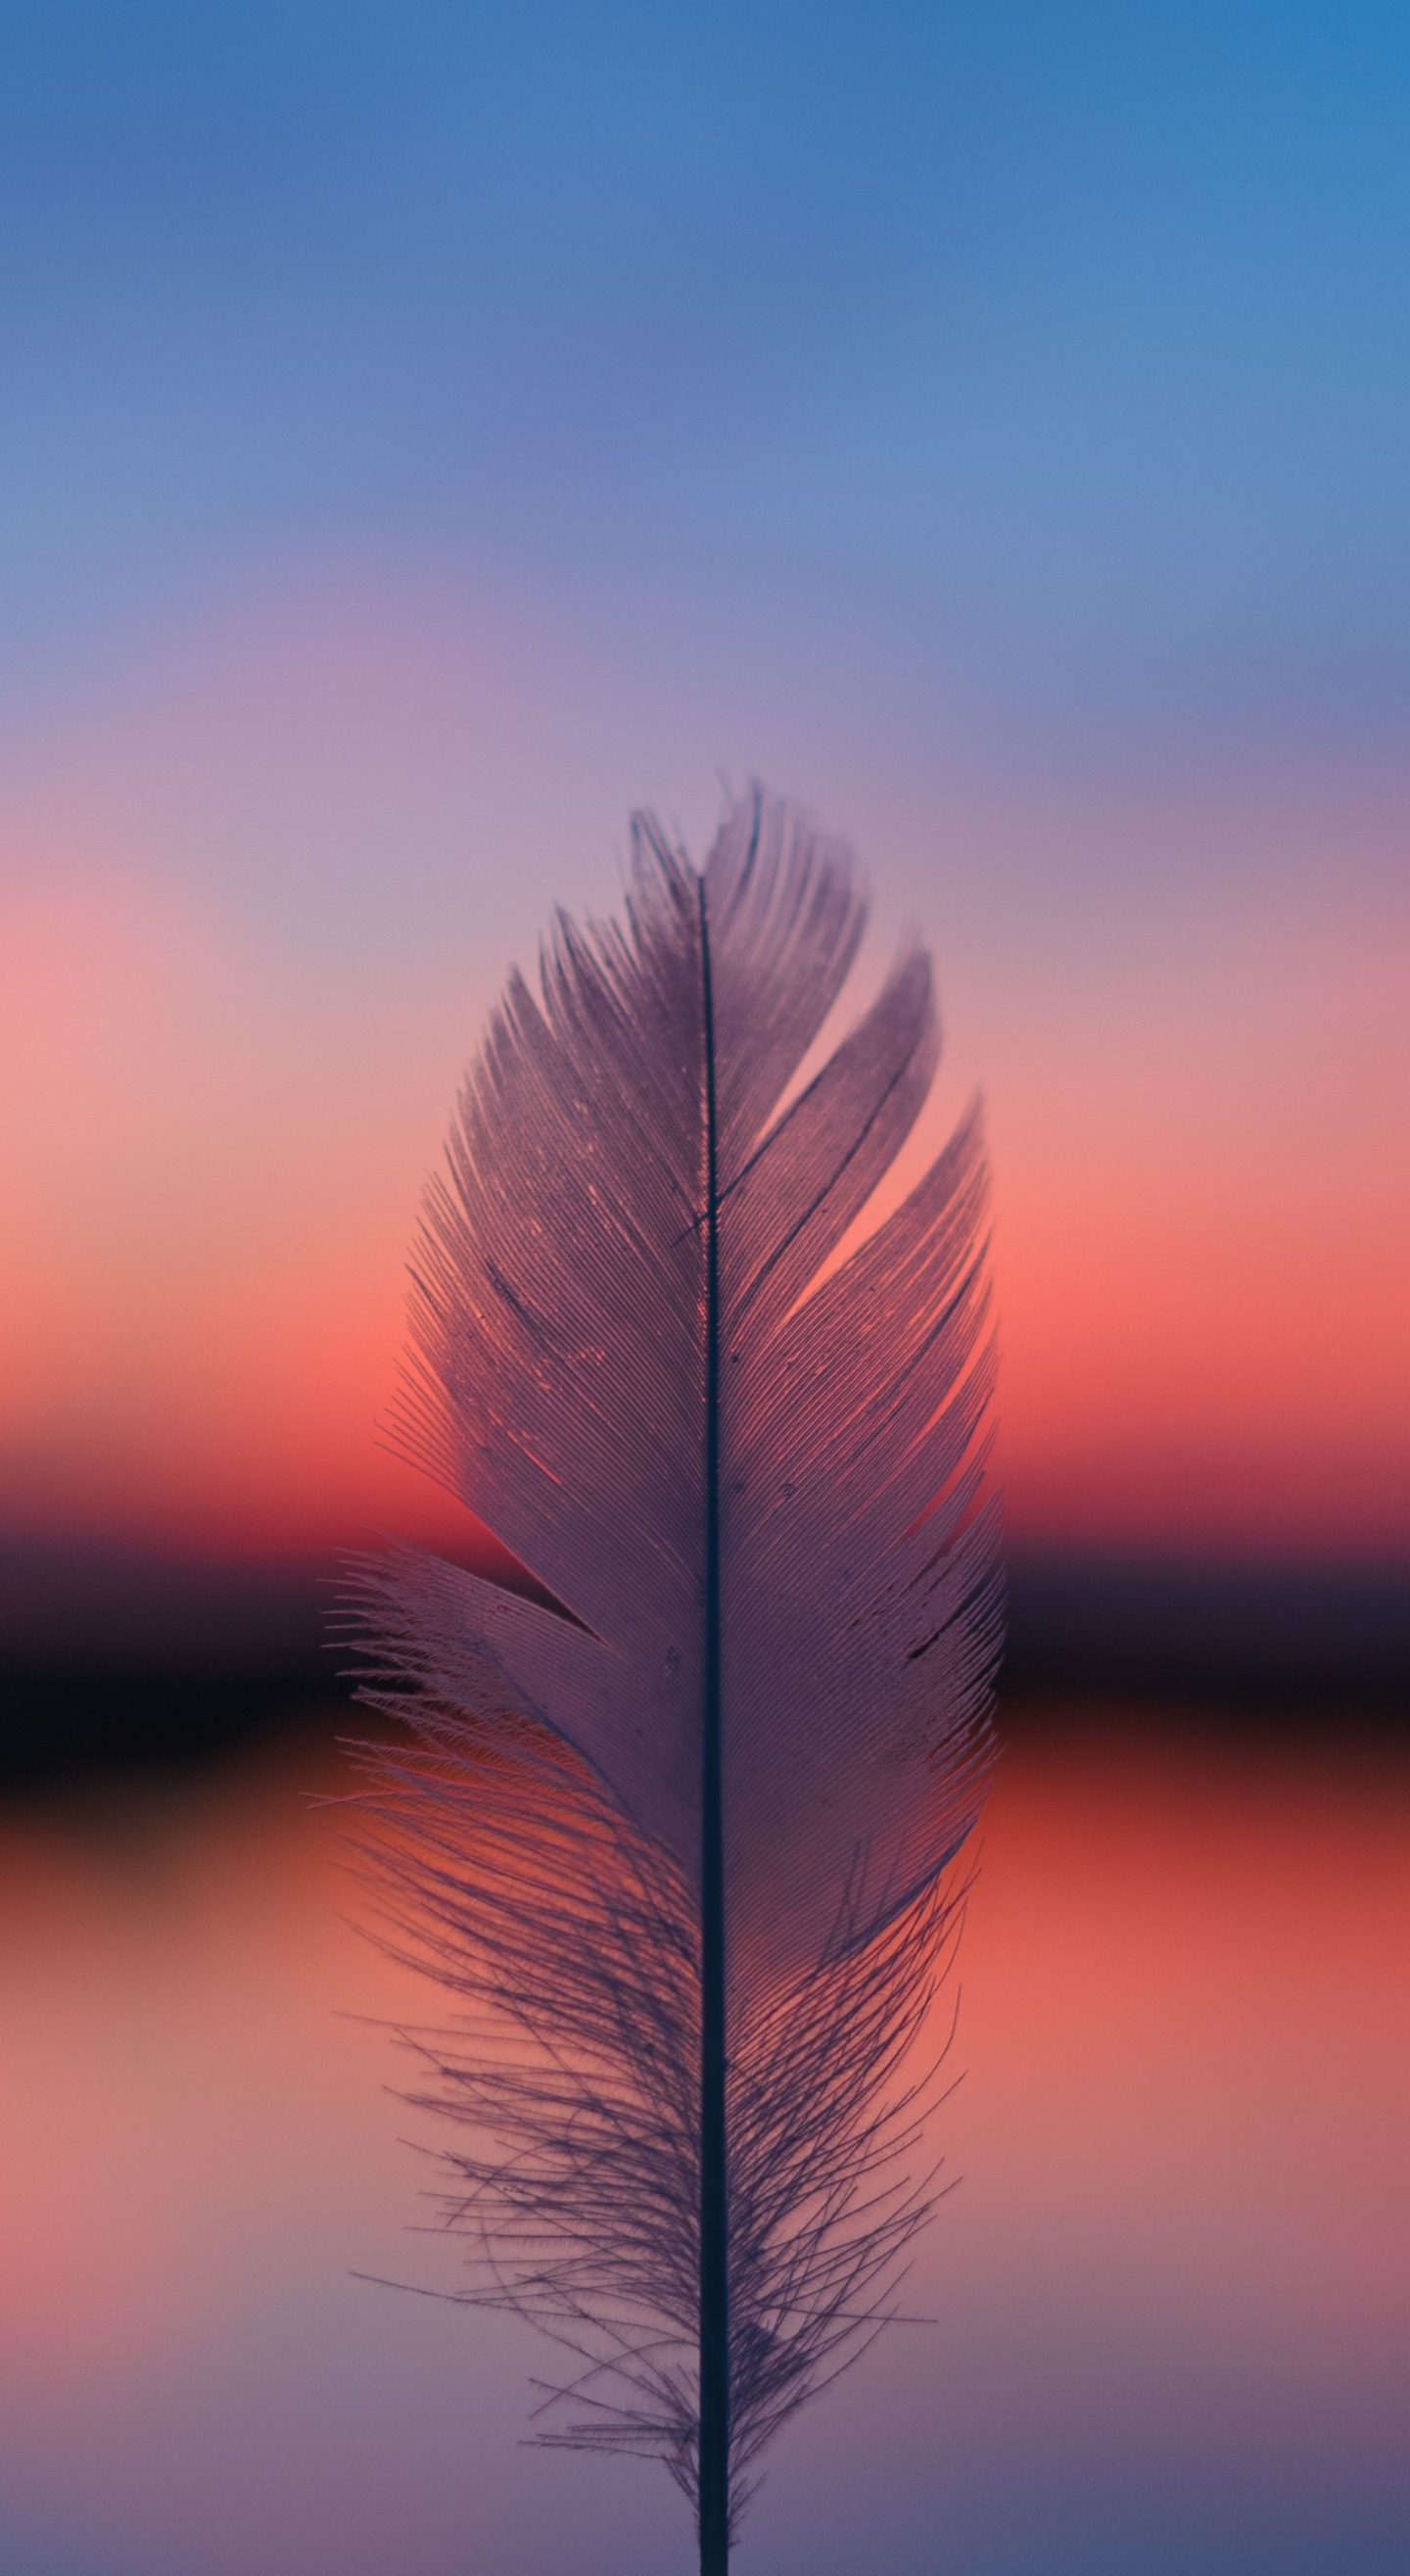 Download 1440x2630 Wallpaper Feather Focus Blur Sunset Samsung Galaxy Note 8 1440x2630 Hd Image Background 22016